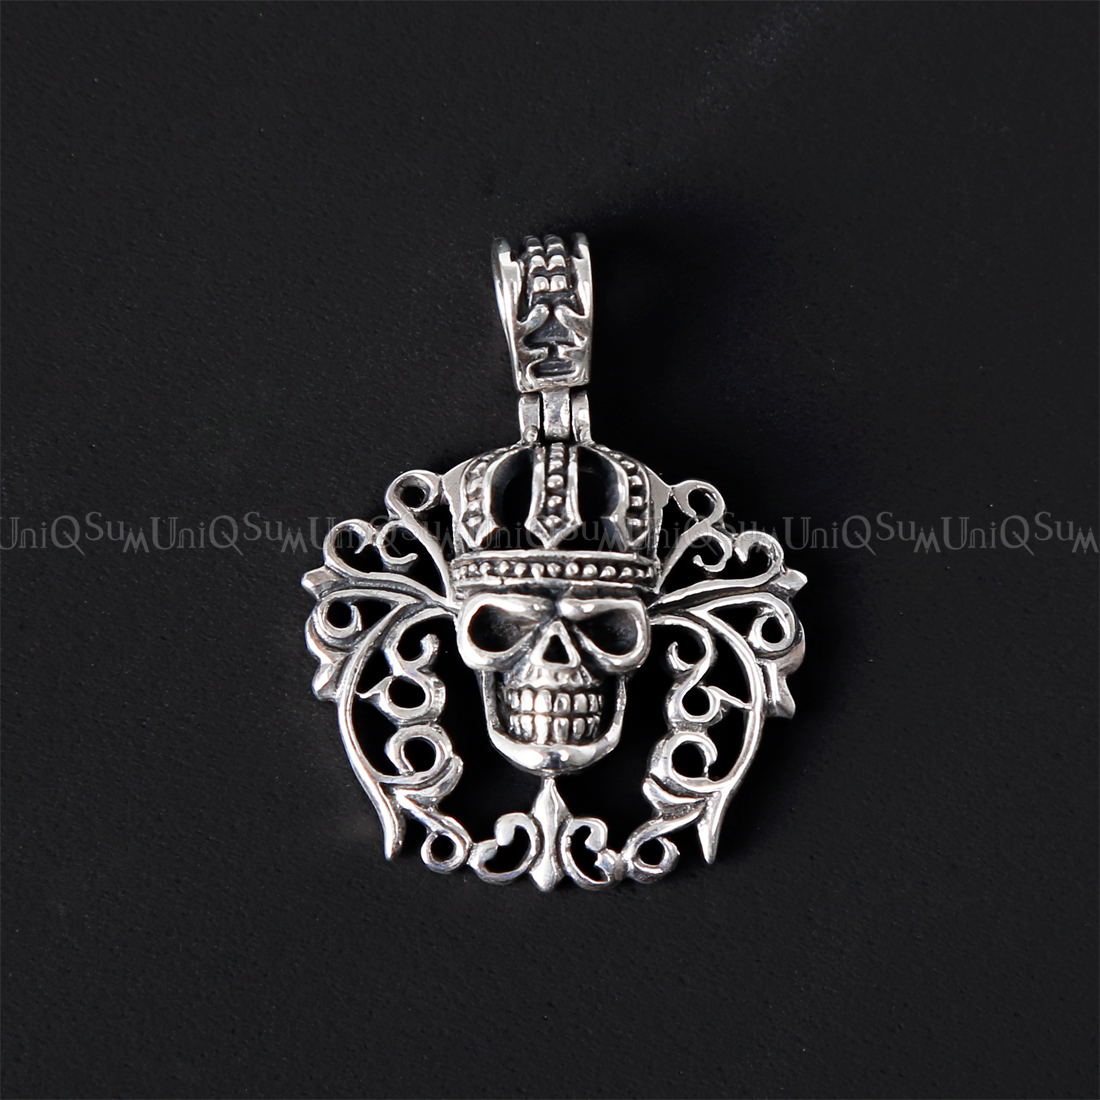 Ethnic crown skull 925 sterling silver pendant uniqsum crown skull pendant fleur de lis celtic crown skull 925 sterling silver pendant skull jewelry aloadofball Image collections